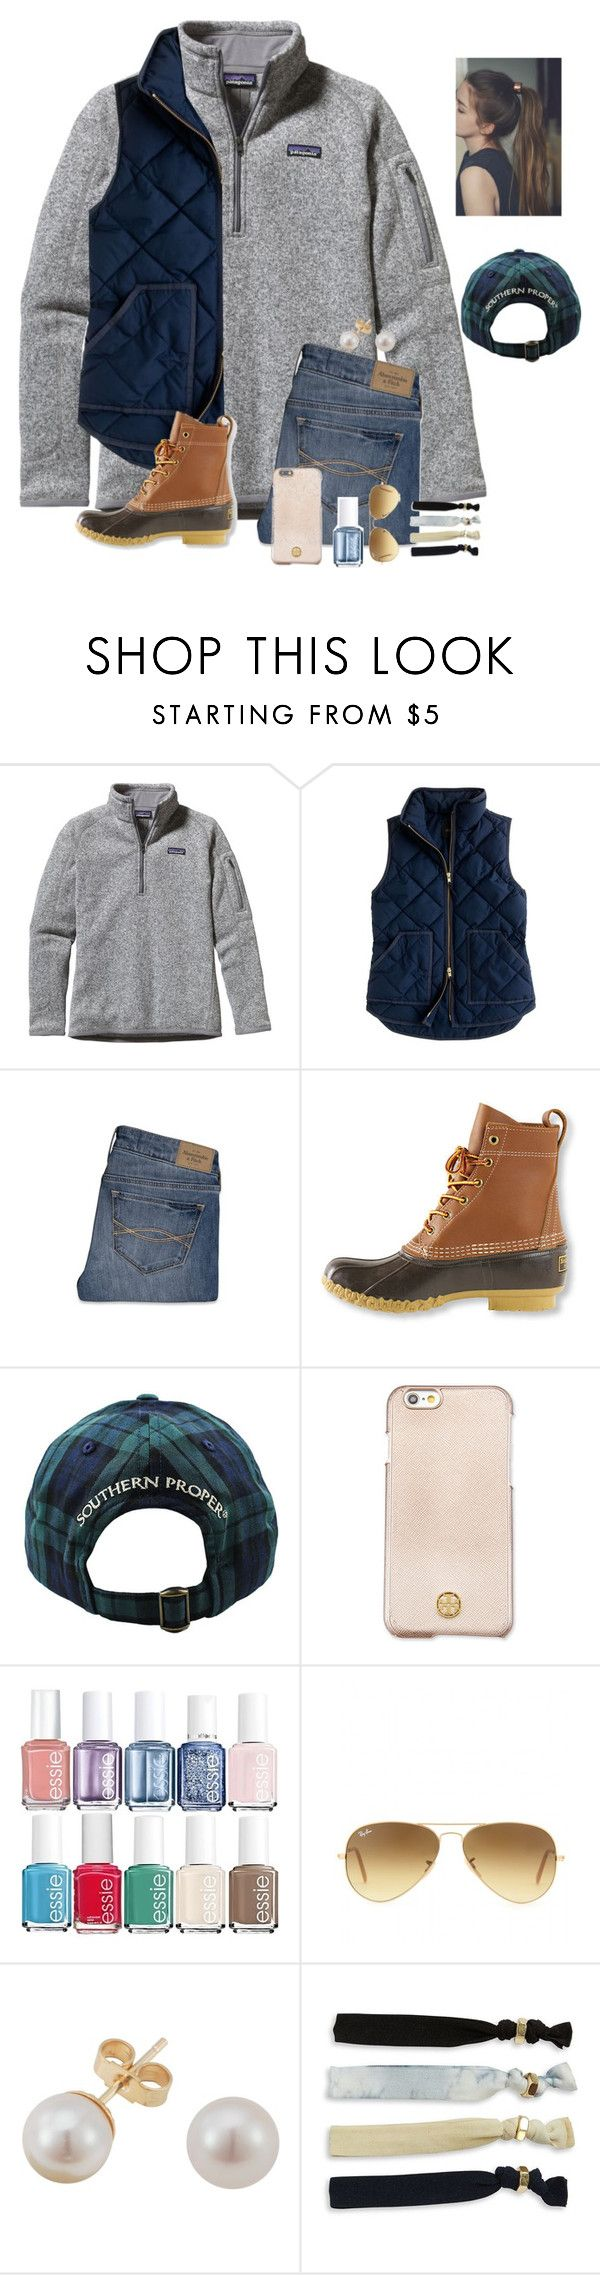 """""""Question of the day #18"""" by raquate1232 ❤ liked on Polyvore featuring Patagonia, J.Crew, Abercrombie & Fitch, L.L.Bean, Southern Proper, Tory Burch, Essie, Ray-Ban, Other and Robert Rose"""